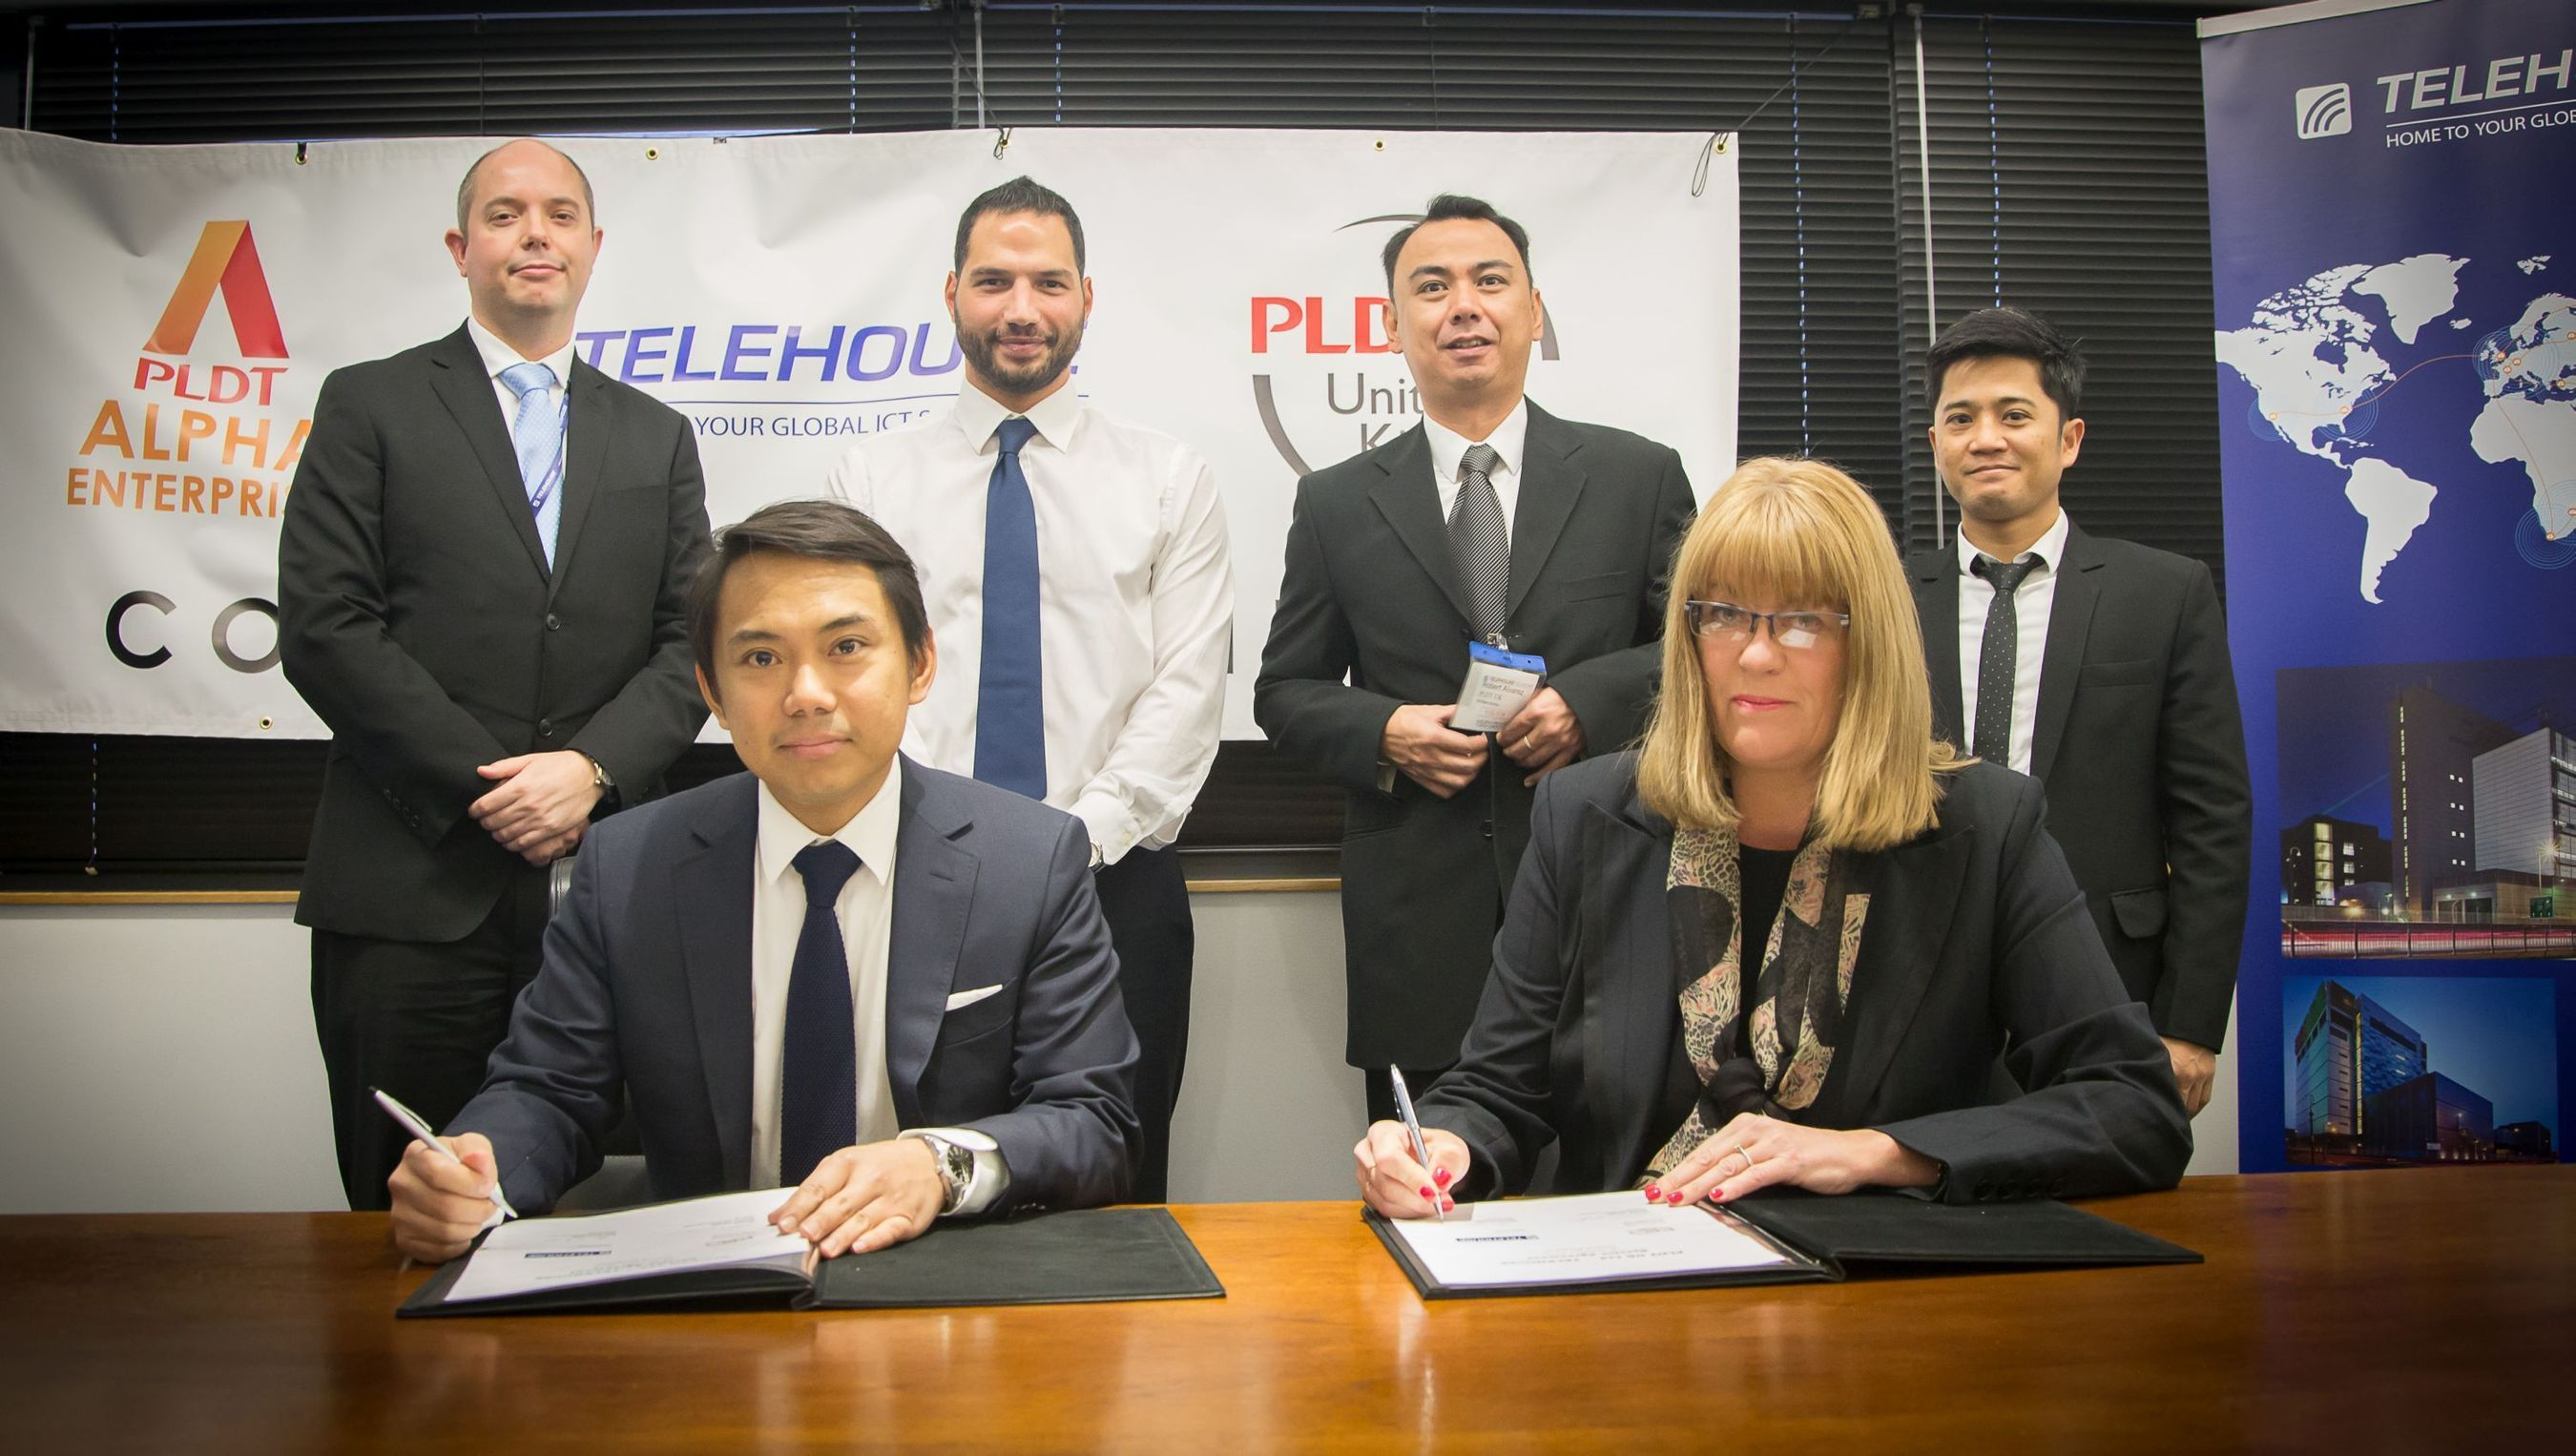 (L to R) William Horley, Marketing Manager at Telehouse; Oliver Calma, General Manager at PLDT UK, Vance Davis, International Account Manager at Telehouse; Roberto Alvarez, Sales, PLDT UK; Michelle Reid, Sales and Marketing Director at Telehouse and Roberto Gabriel, Head of IT at PLDT UK at the contract signing. (PRNewsFoto/Telehouse)